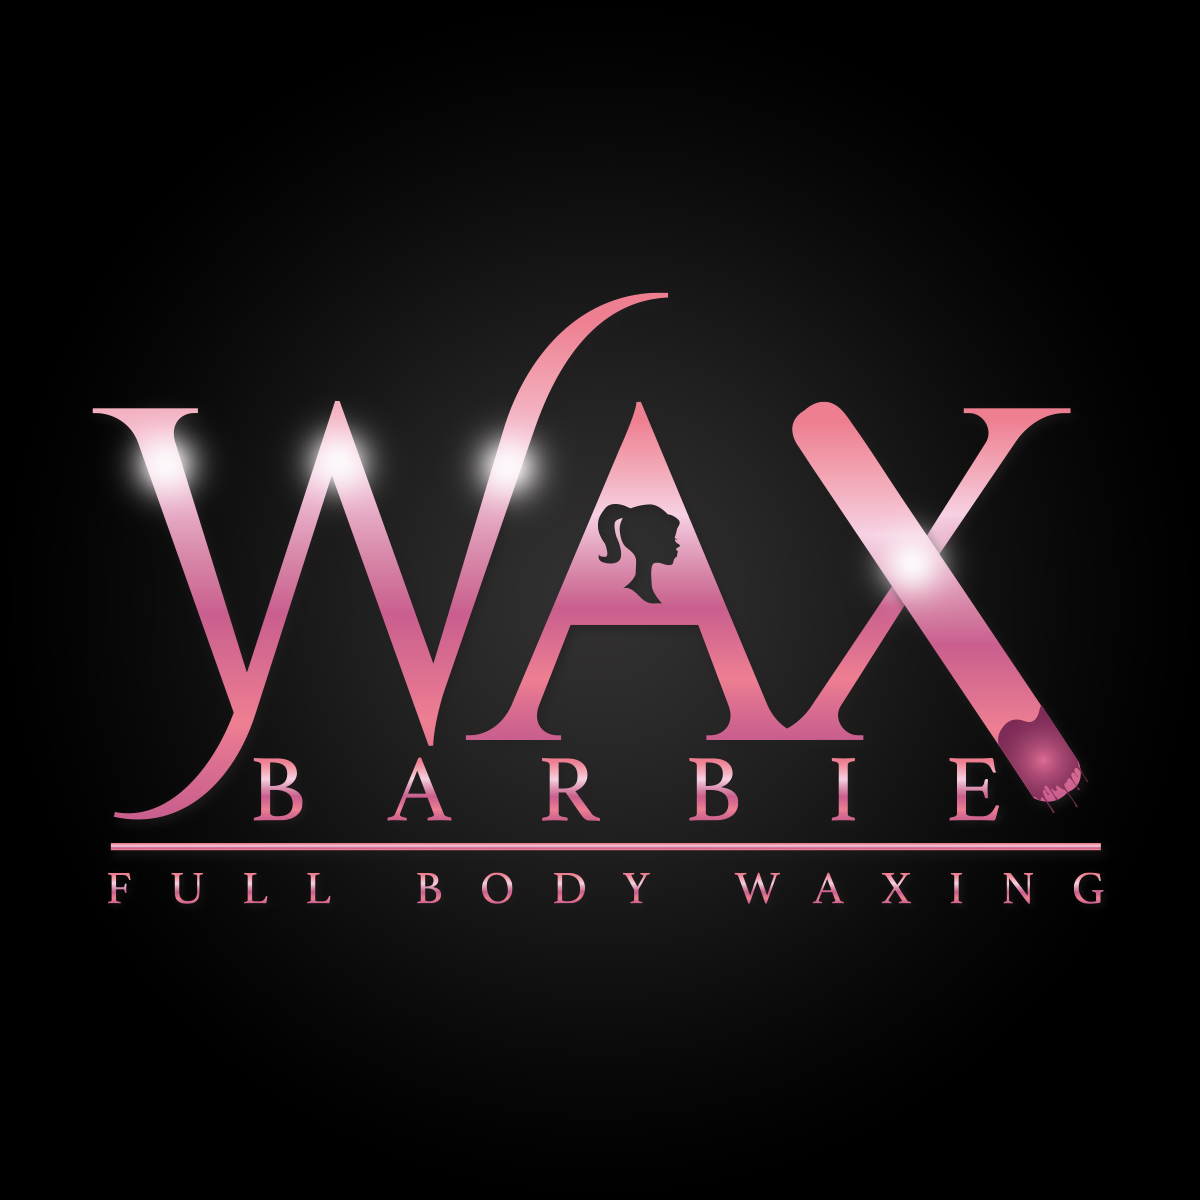 Wax barbie Logo Final.jpg